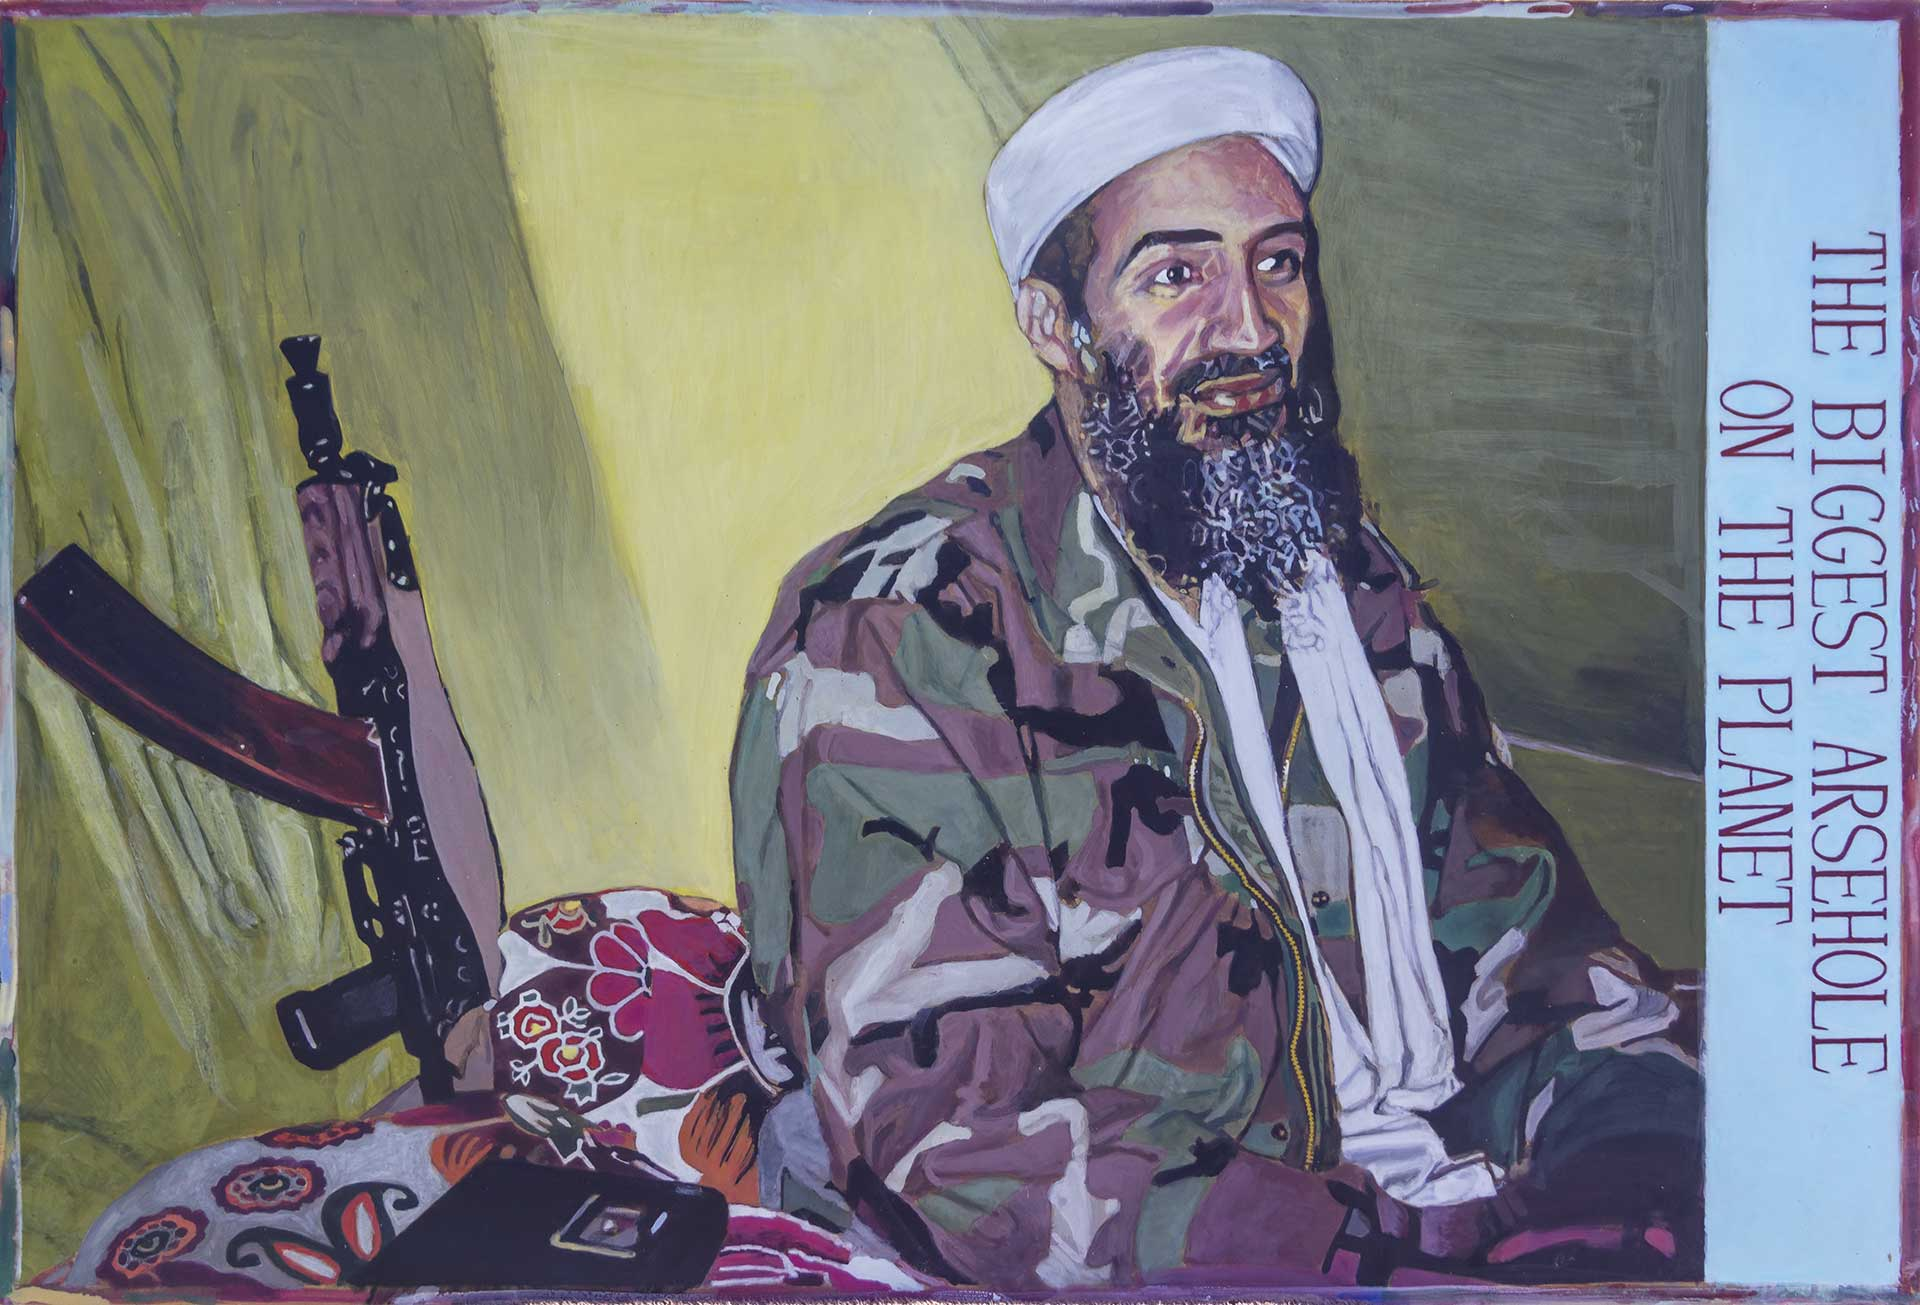 Photorealist painting - Osama - The Biggest Arsehole On The Planet